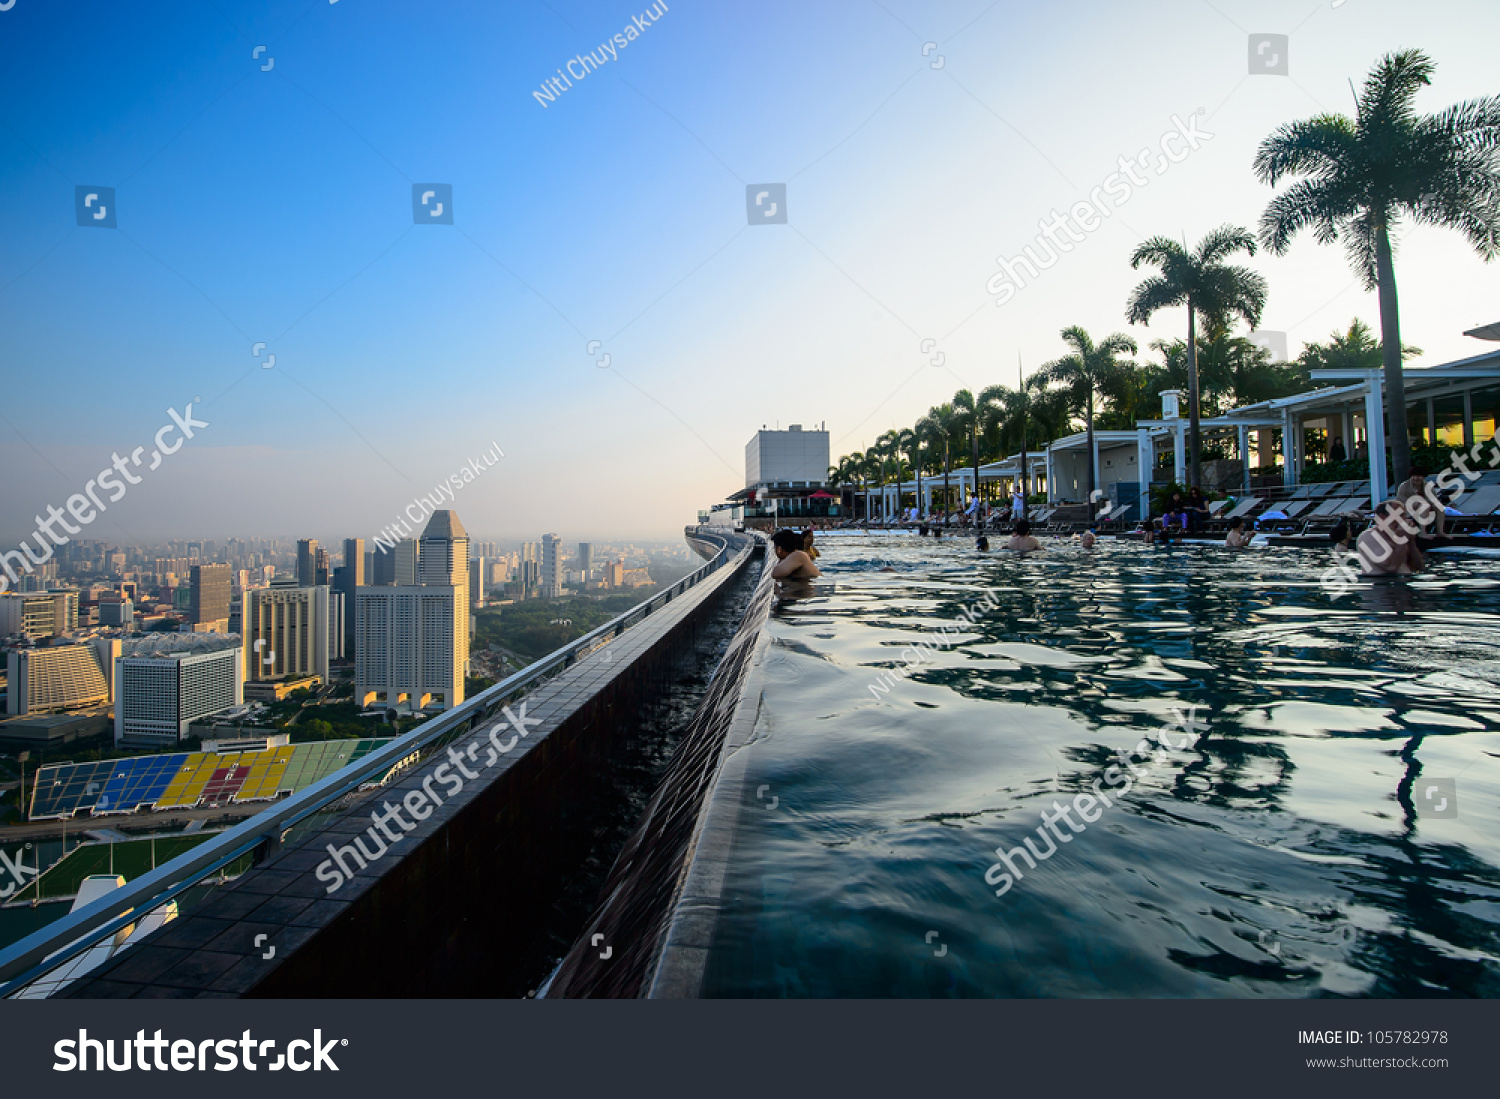 Singapore April 5 Swimming Pool Of The Marina Bay Sands